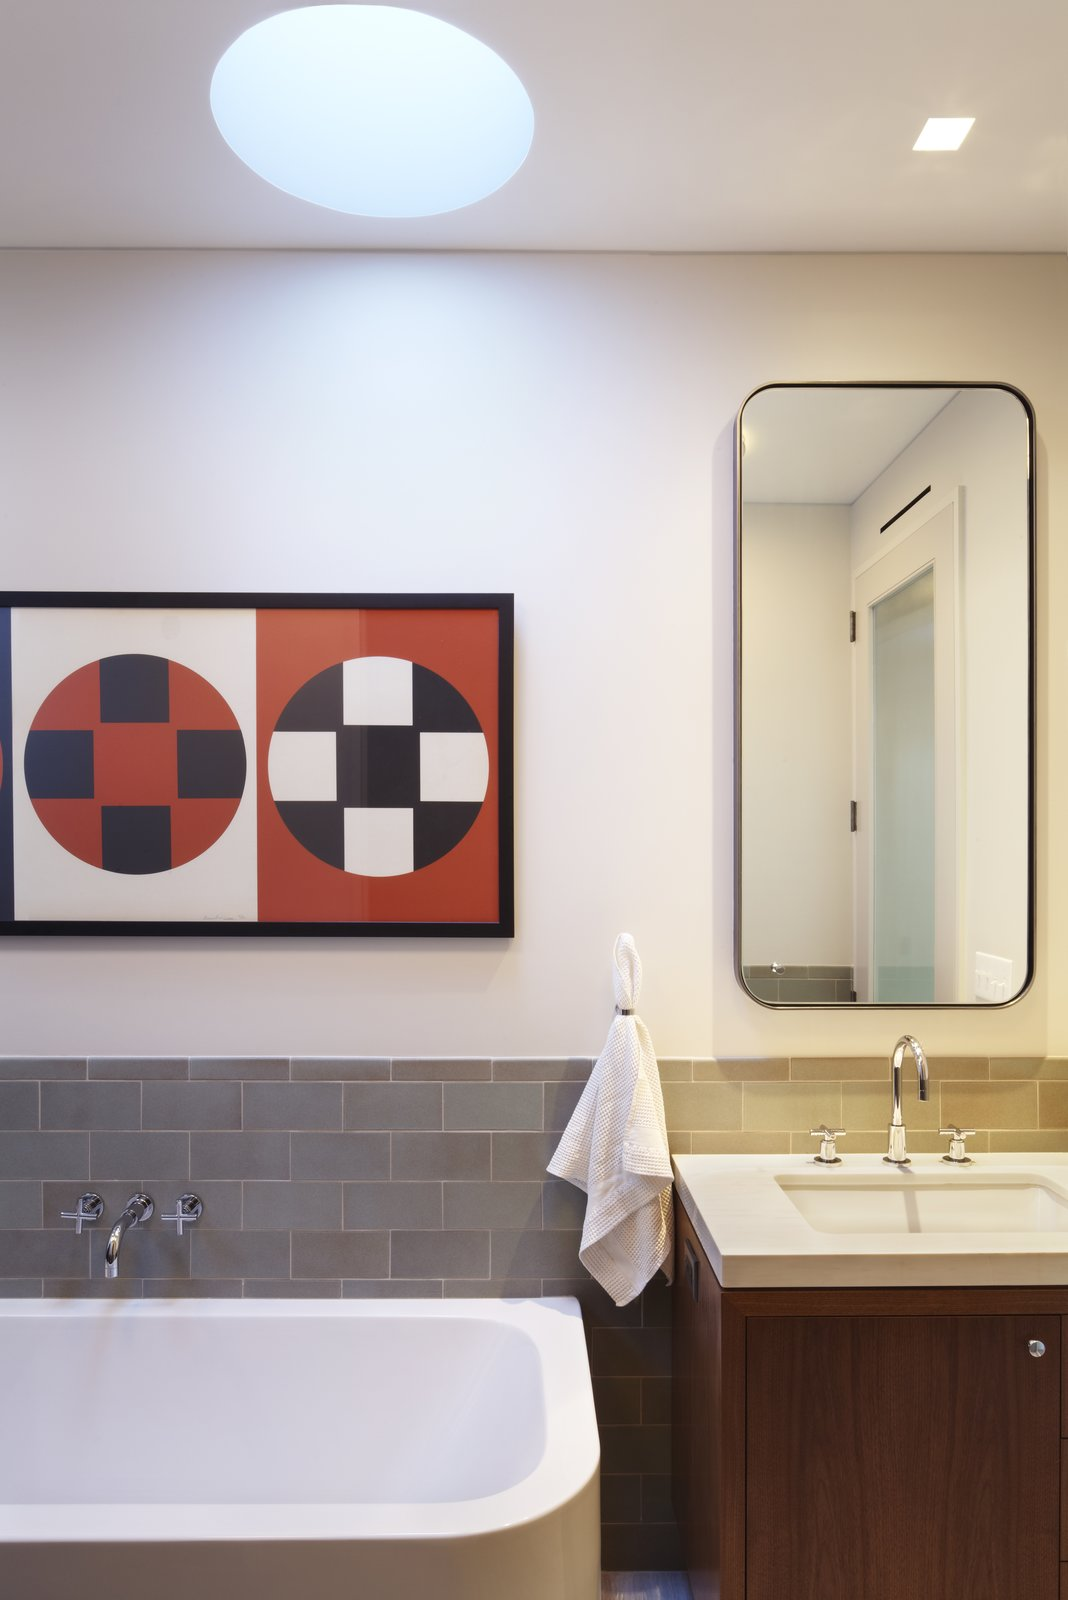 A detail photo of the master bath in the penthouse addition.  Here highlighting some of our favorites - tile from Heath Ceramics, plumbing fittings by Dornbracht, bathtub and sink by Duravit and an Arne Jacobsen hand towel ring by Vola.  The medicine cabinet was custom made to our specifications and has a cold rolled blackened steel frame.